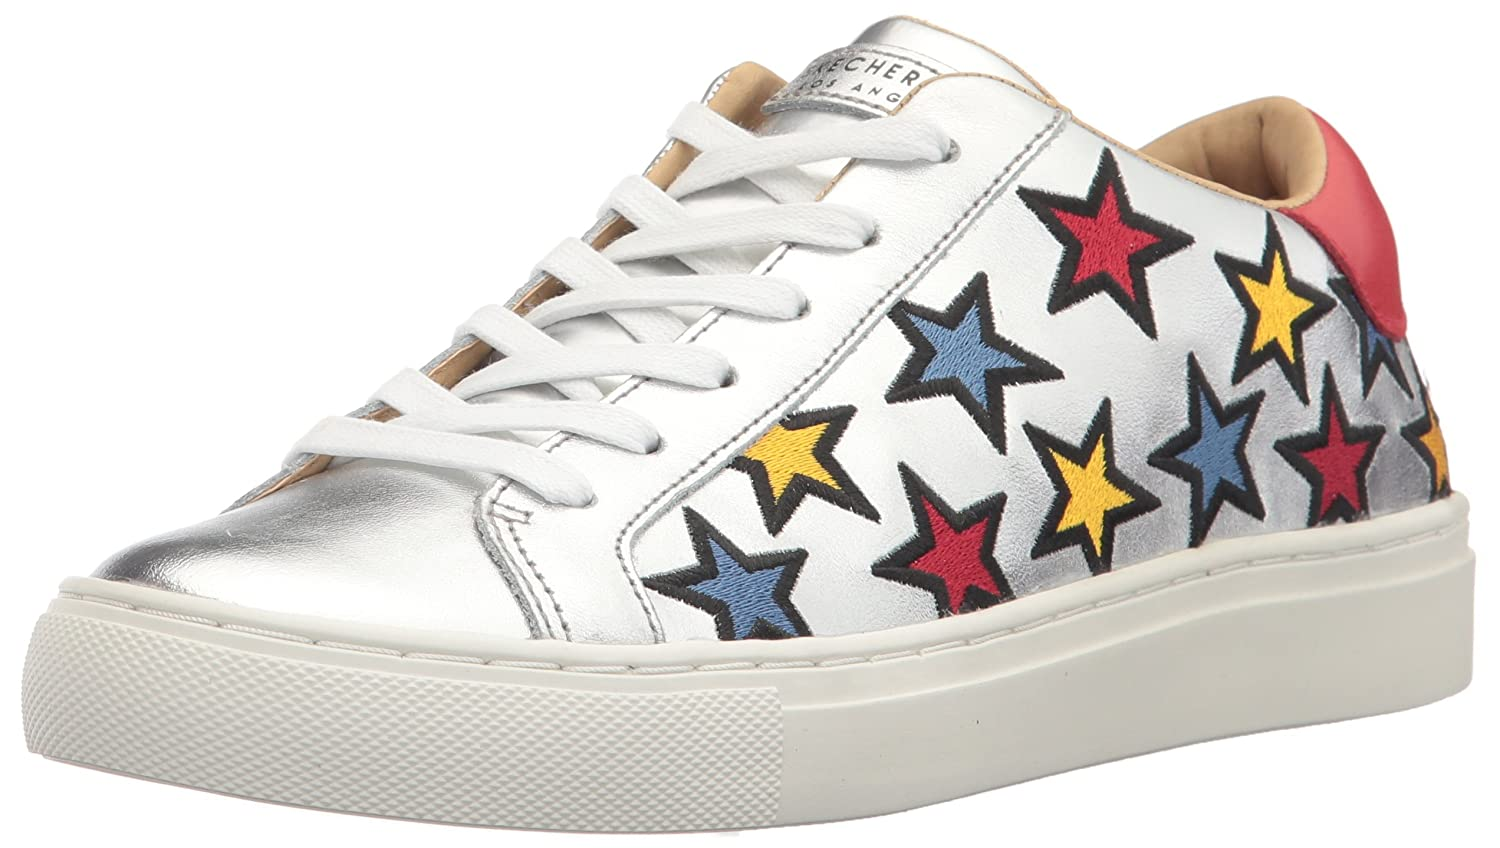 Skechers Street-Star Side Embroid, Zapatillas para Mujer 37 EU|Varios Colores (Silver Leather/ Multicolour Color Embroidered Star Trim)